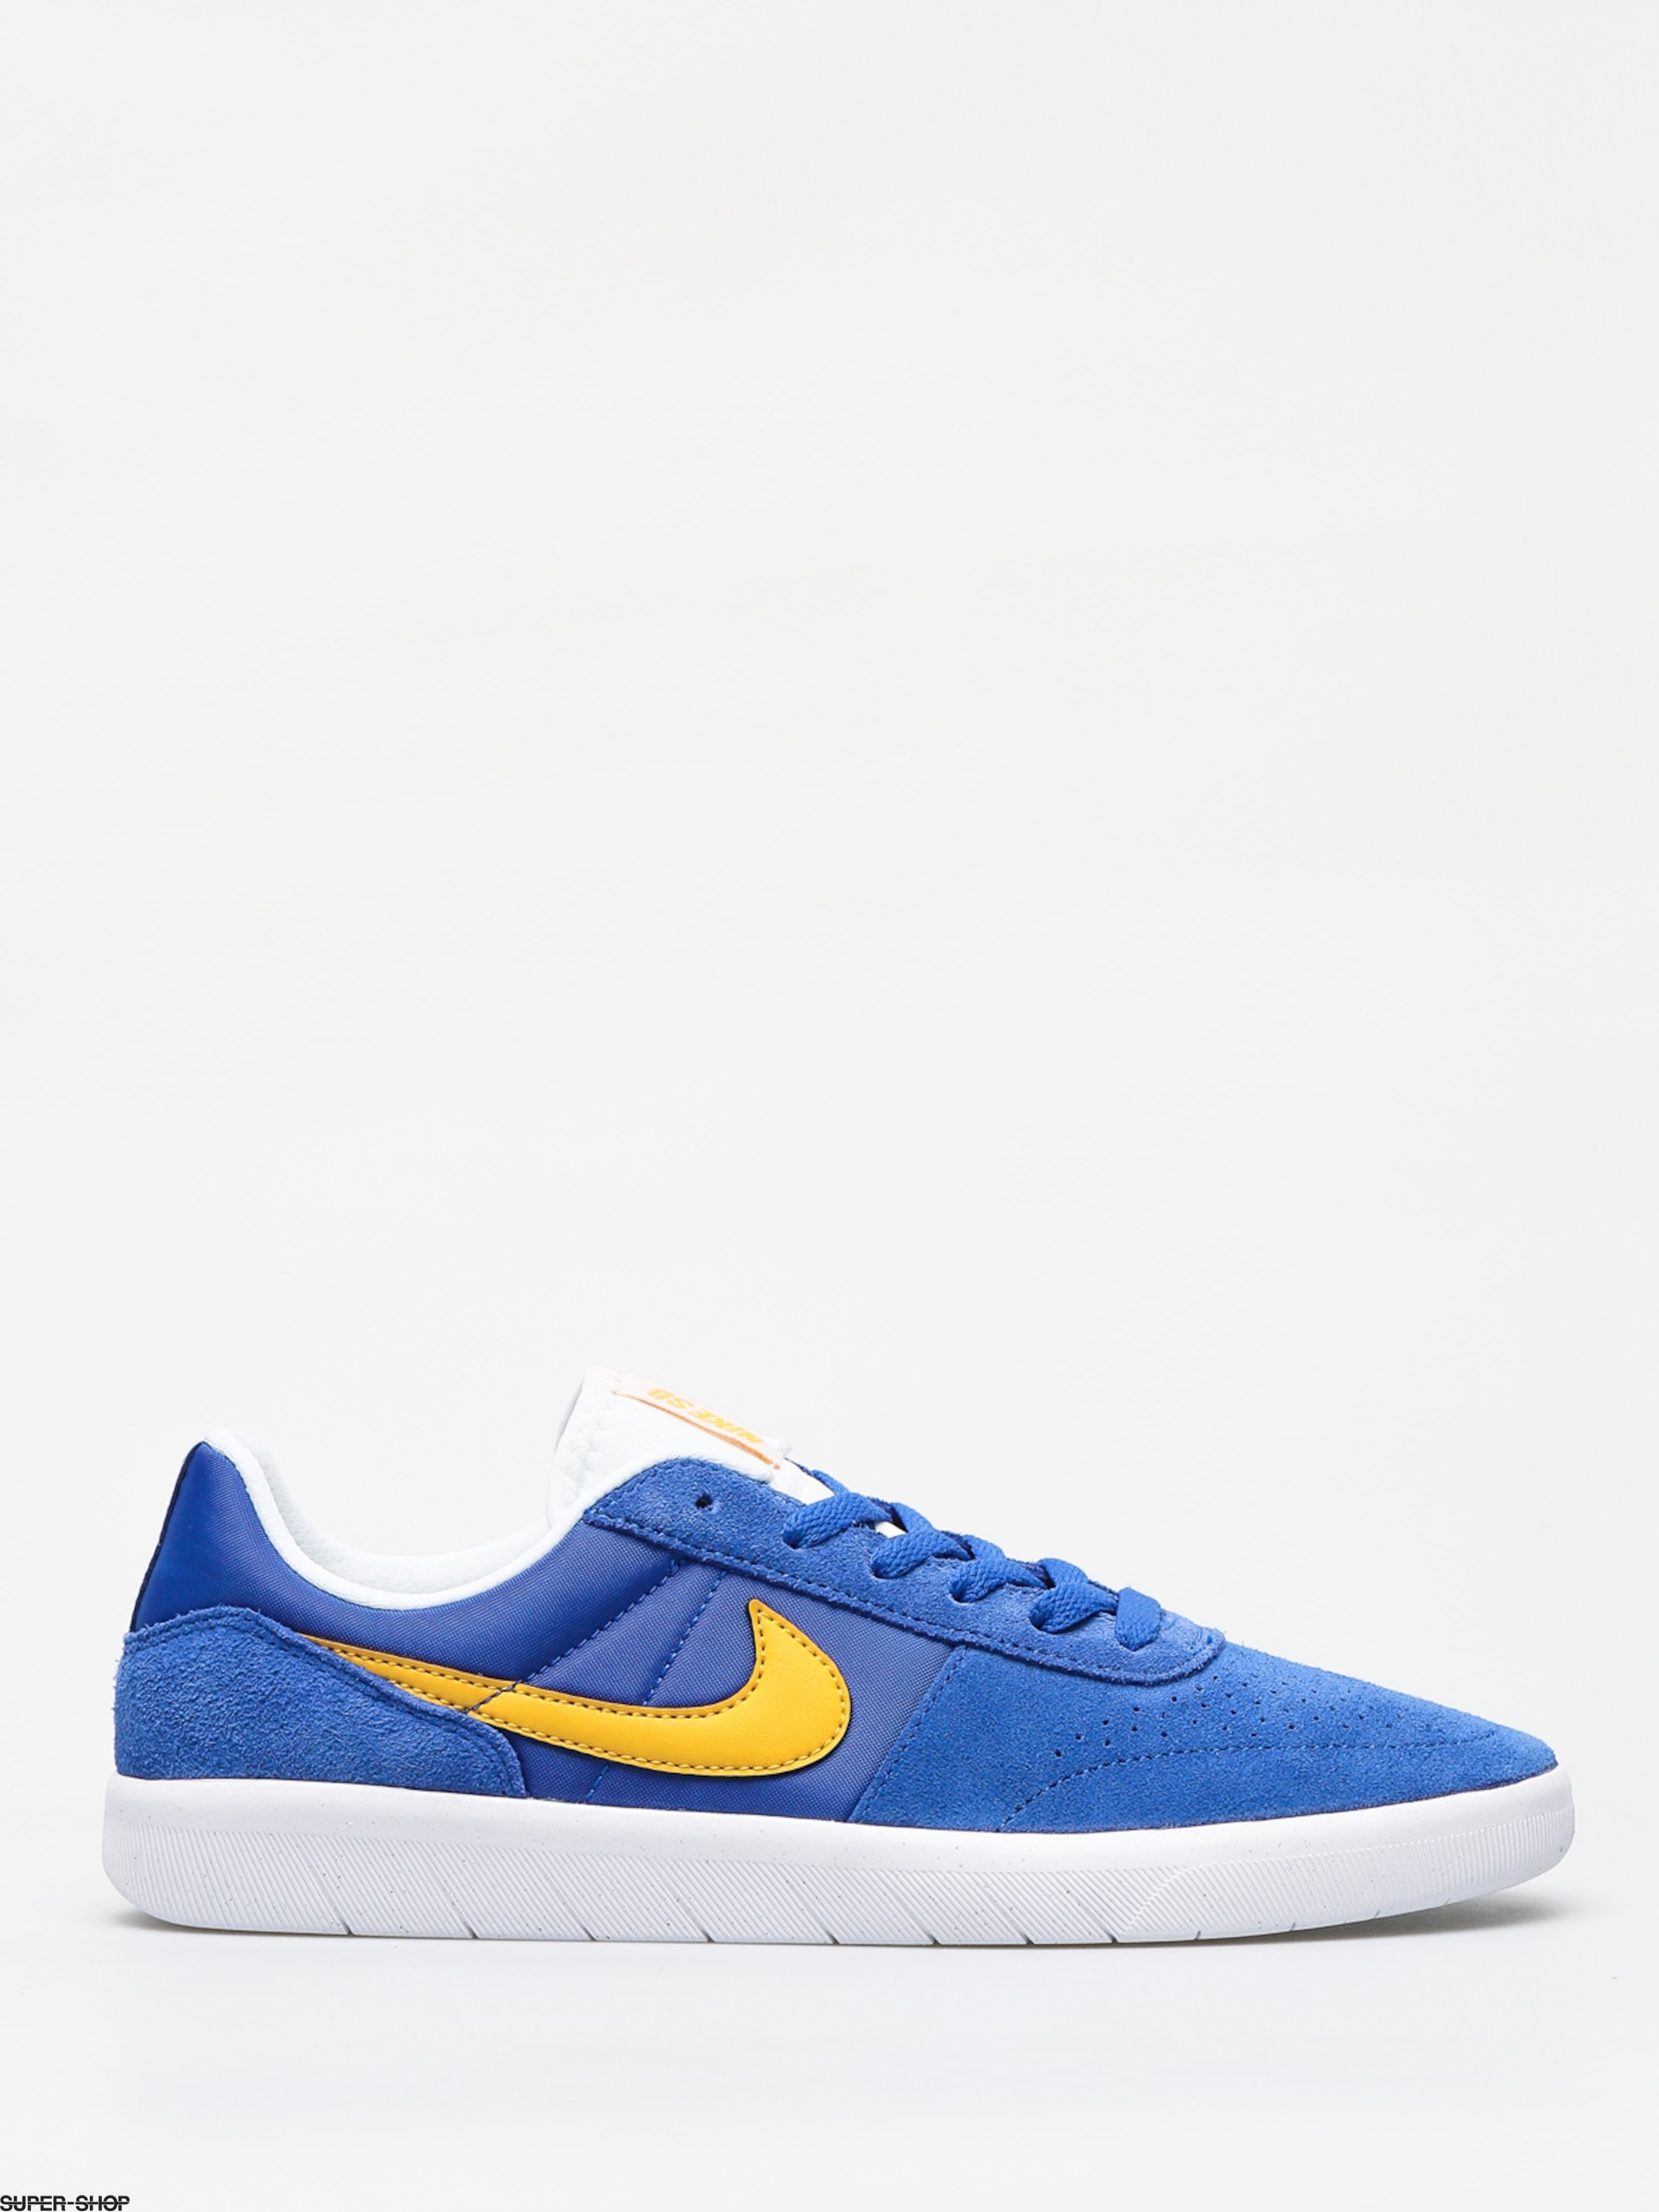 Clean And Classic Cheap And Amazing Nike Game Royal White